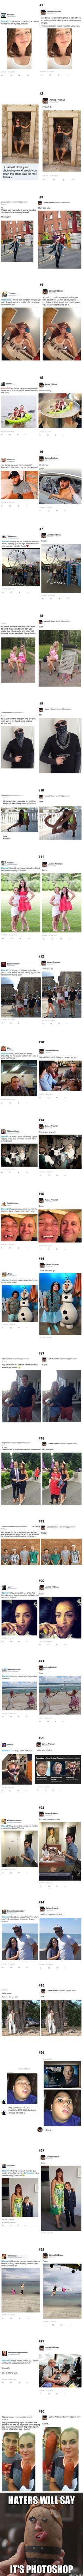 30 Photoshop Requests That Are Taken Literally By James Fridman